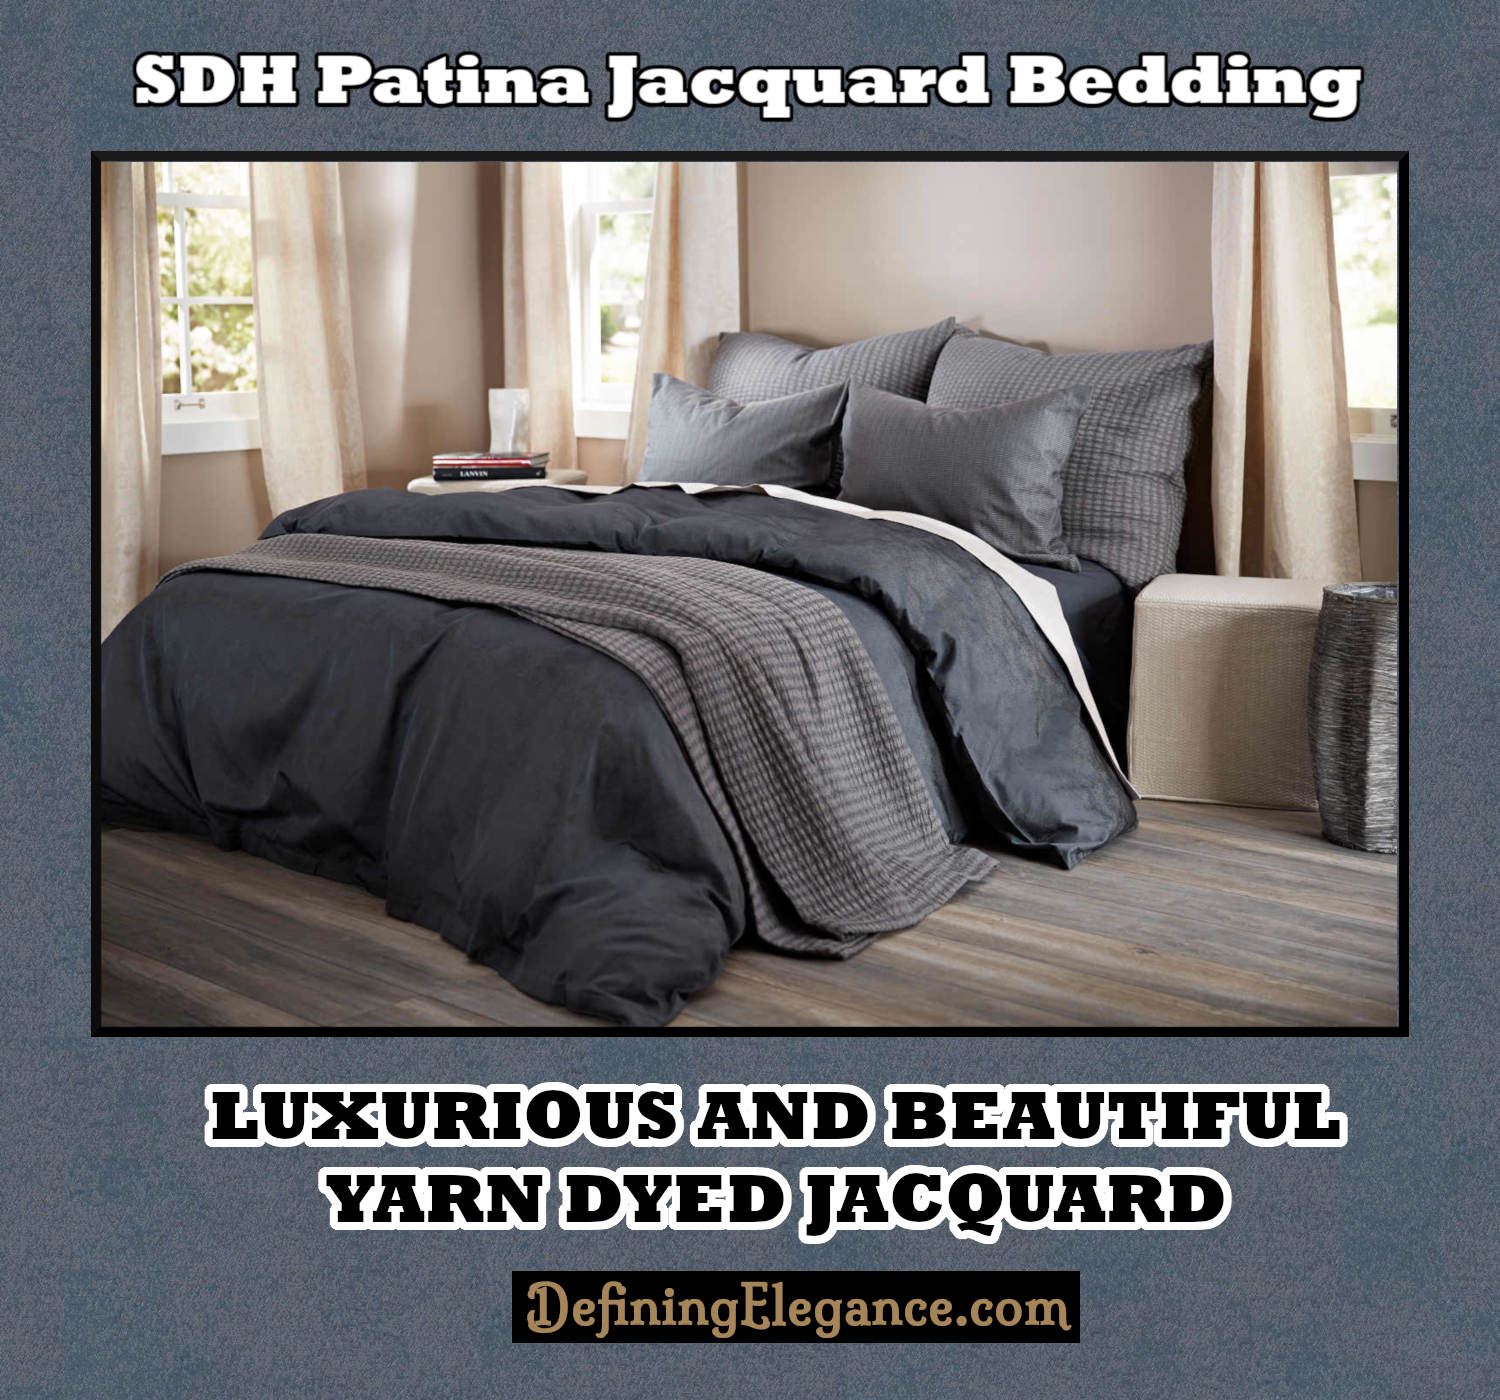 SDH Patina Jacquard Bedding